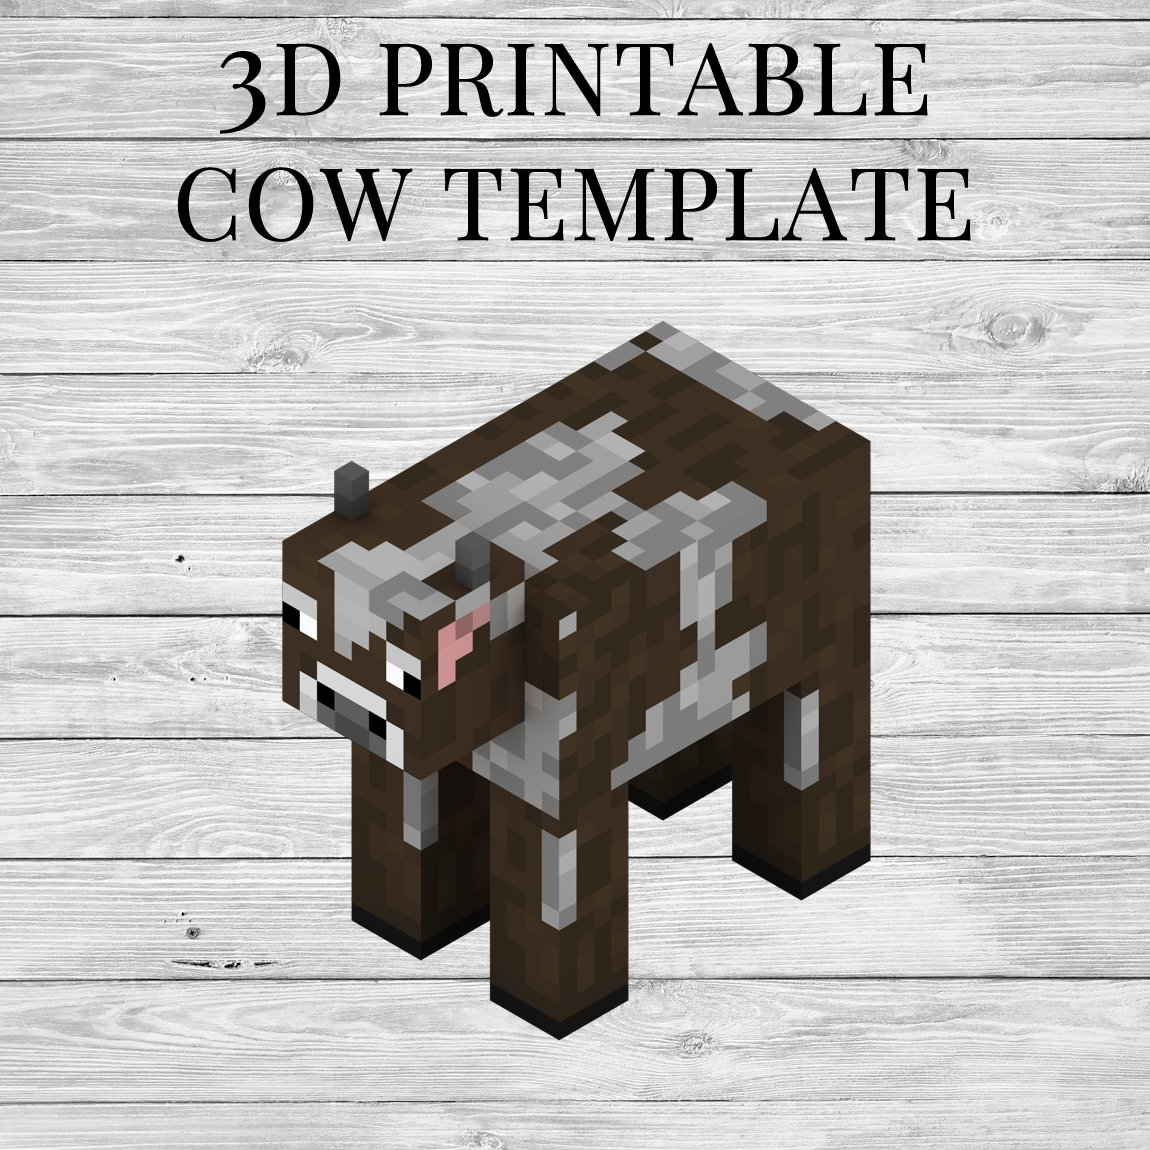 Minecraft Cow - 3D Printable Minecraft Cow Papercraft Template